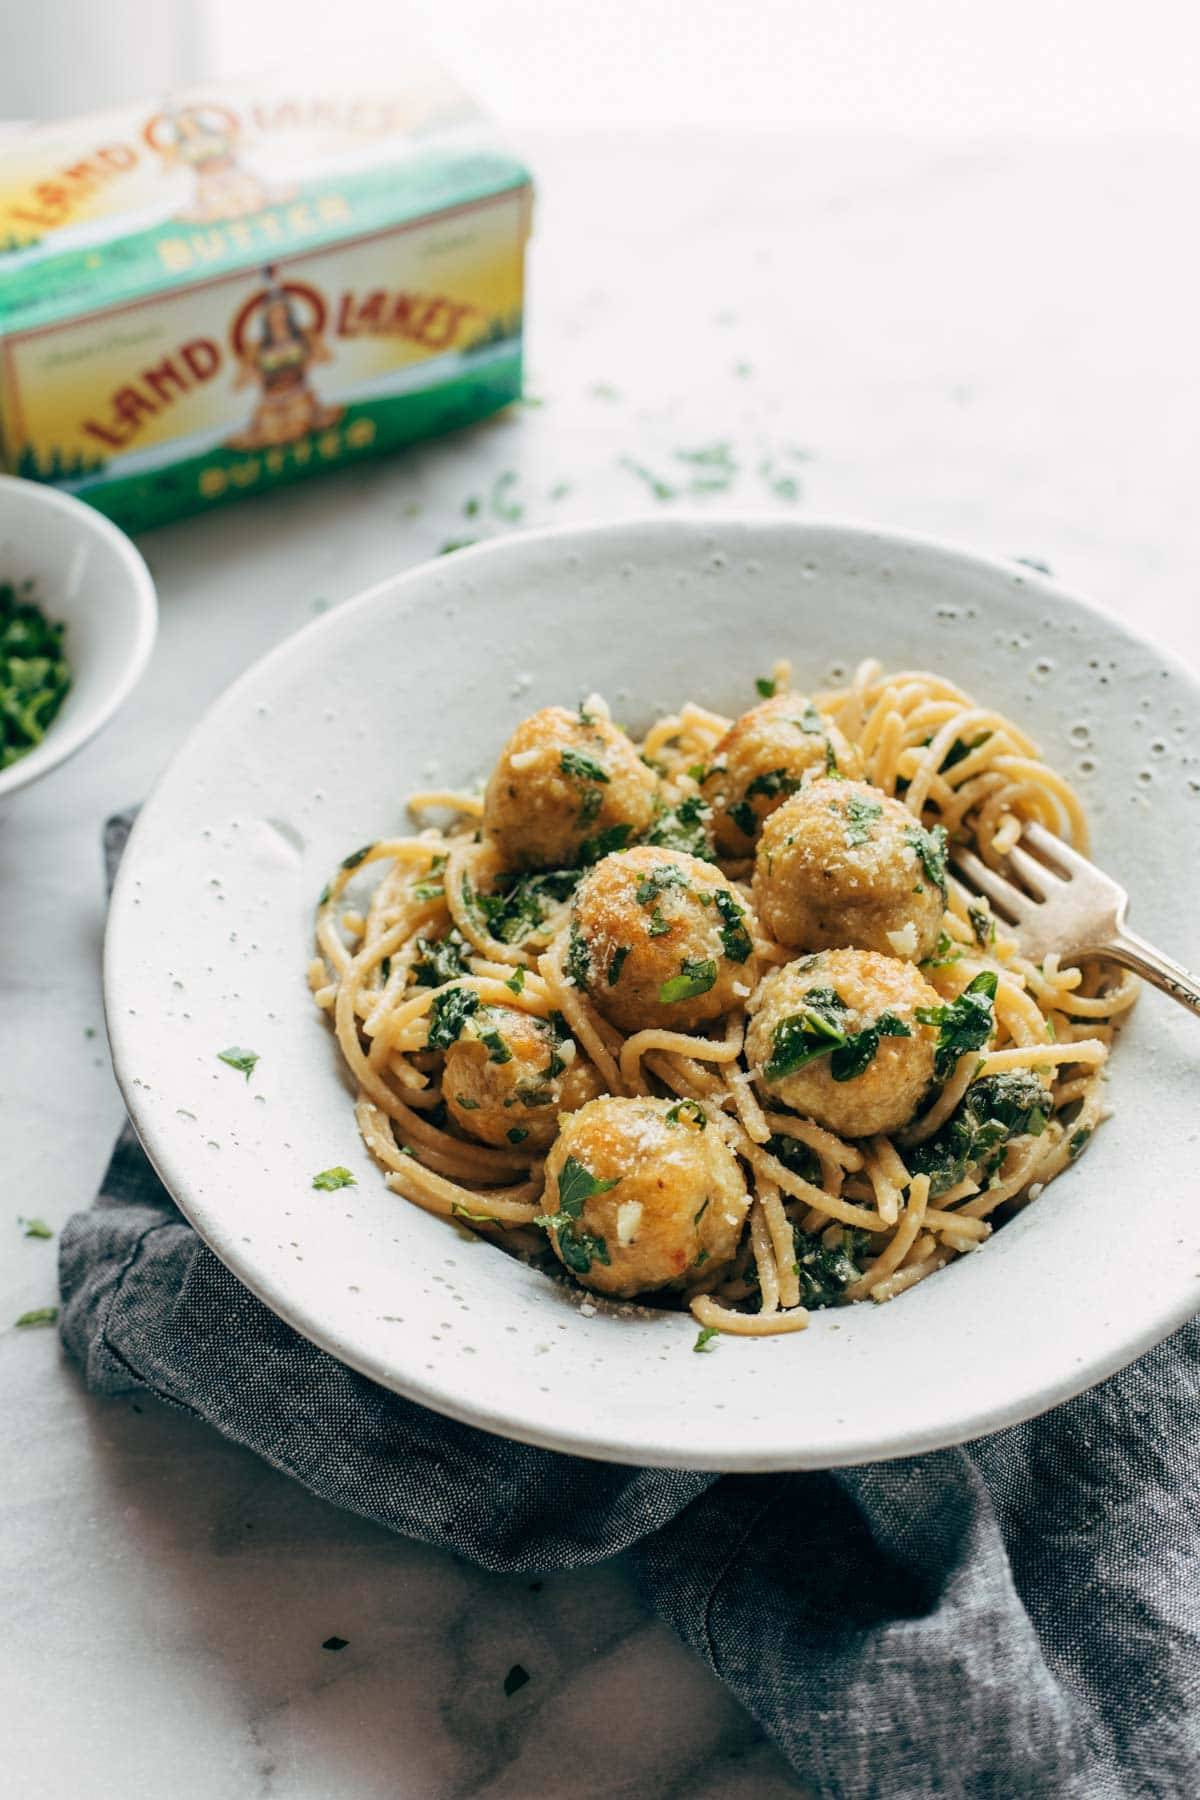 Garlic Herb Spaghetti with Baked Chicken Meatballs in a bowl with fork twirl.